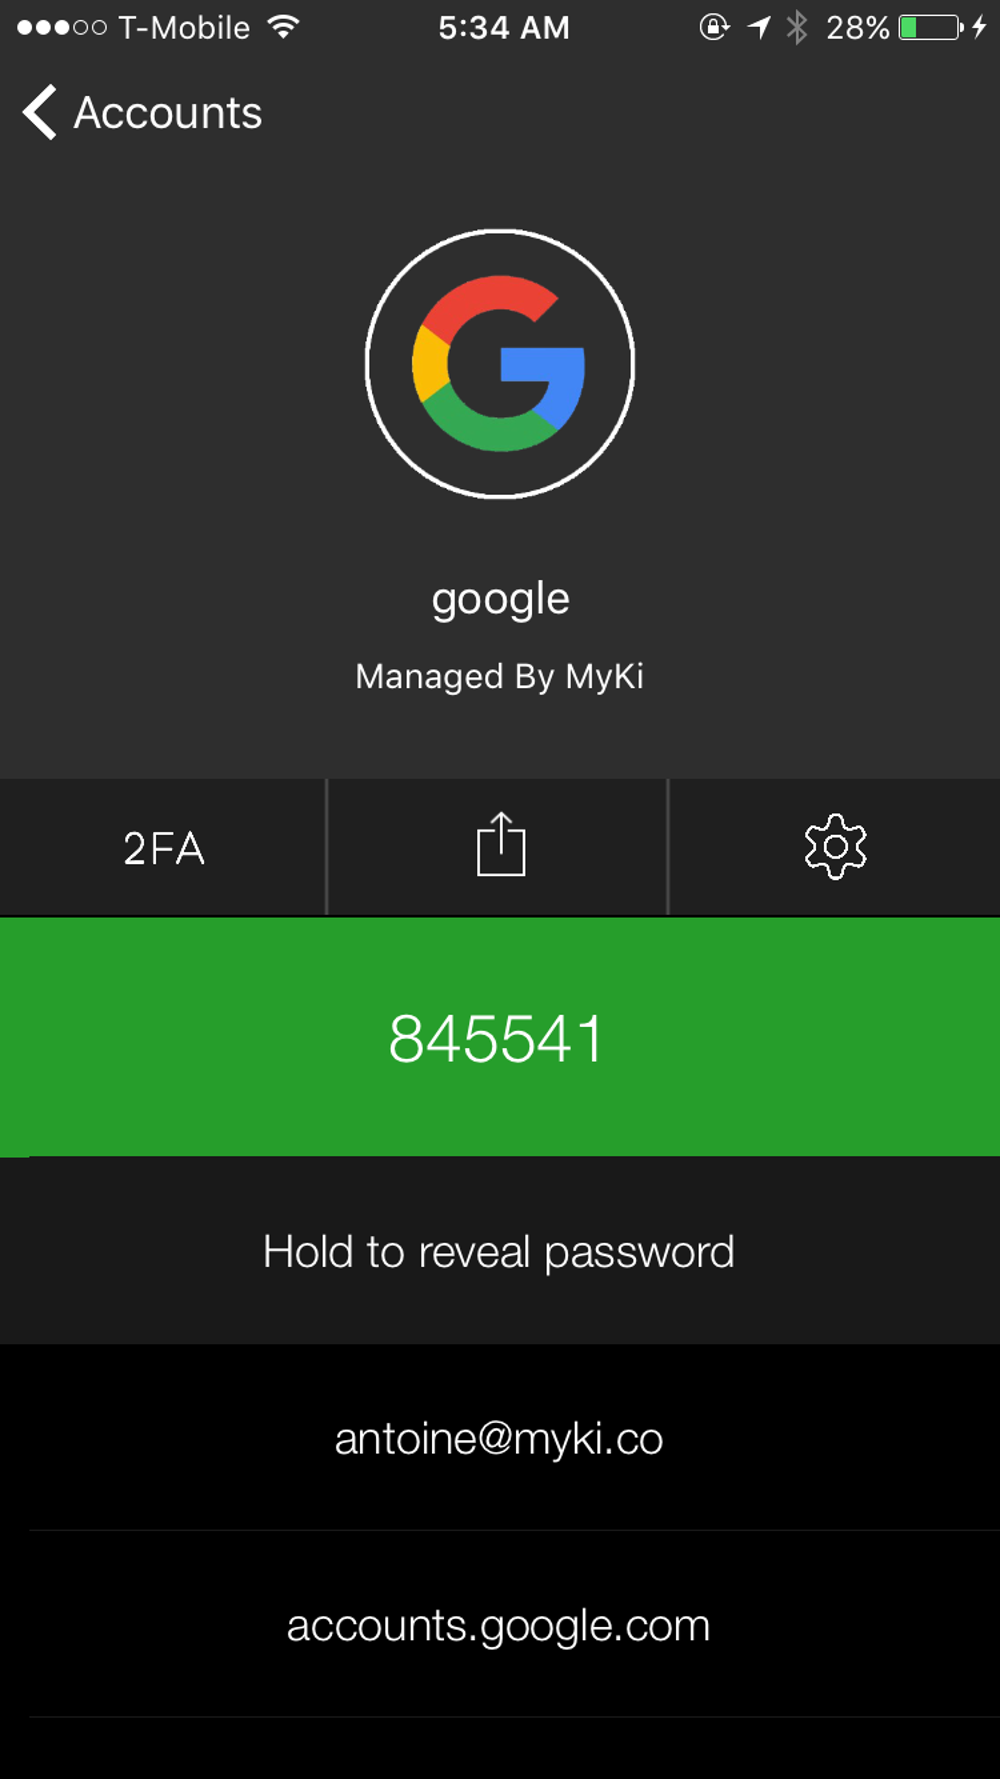 RIP Passwords: Myki Wants To Alter The Way Access Is Managed In The